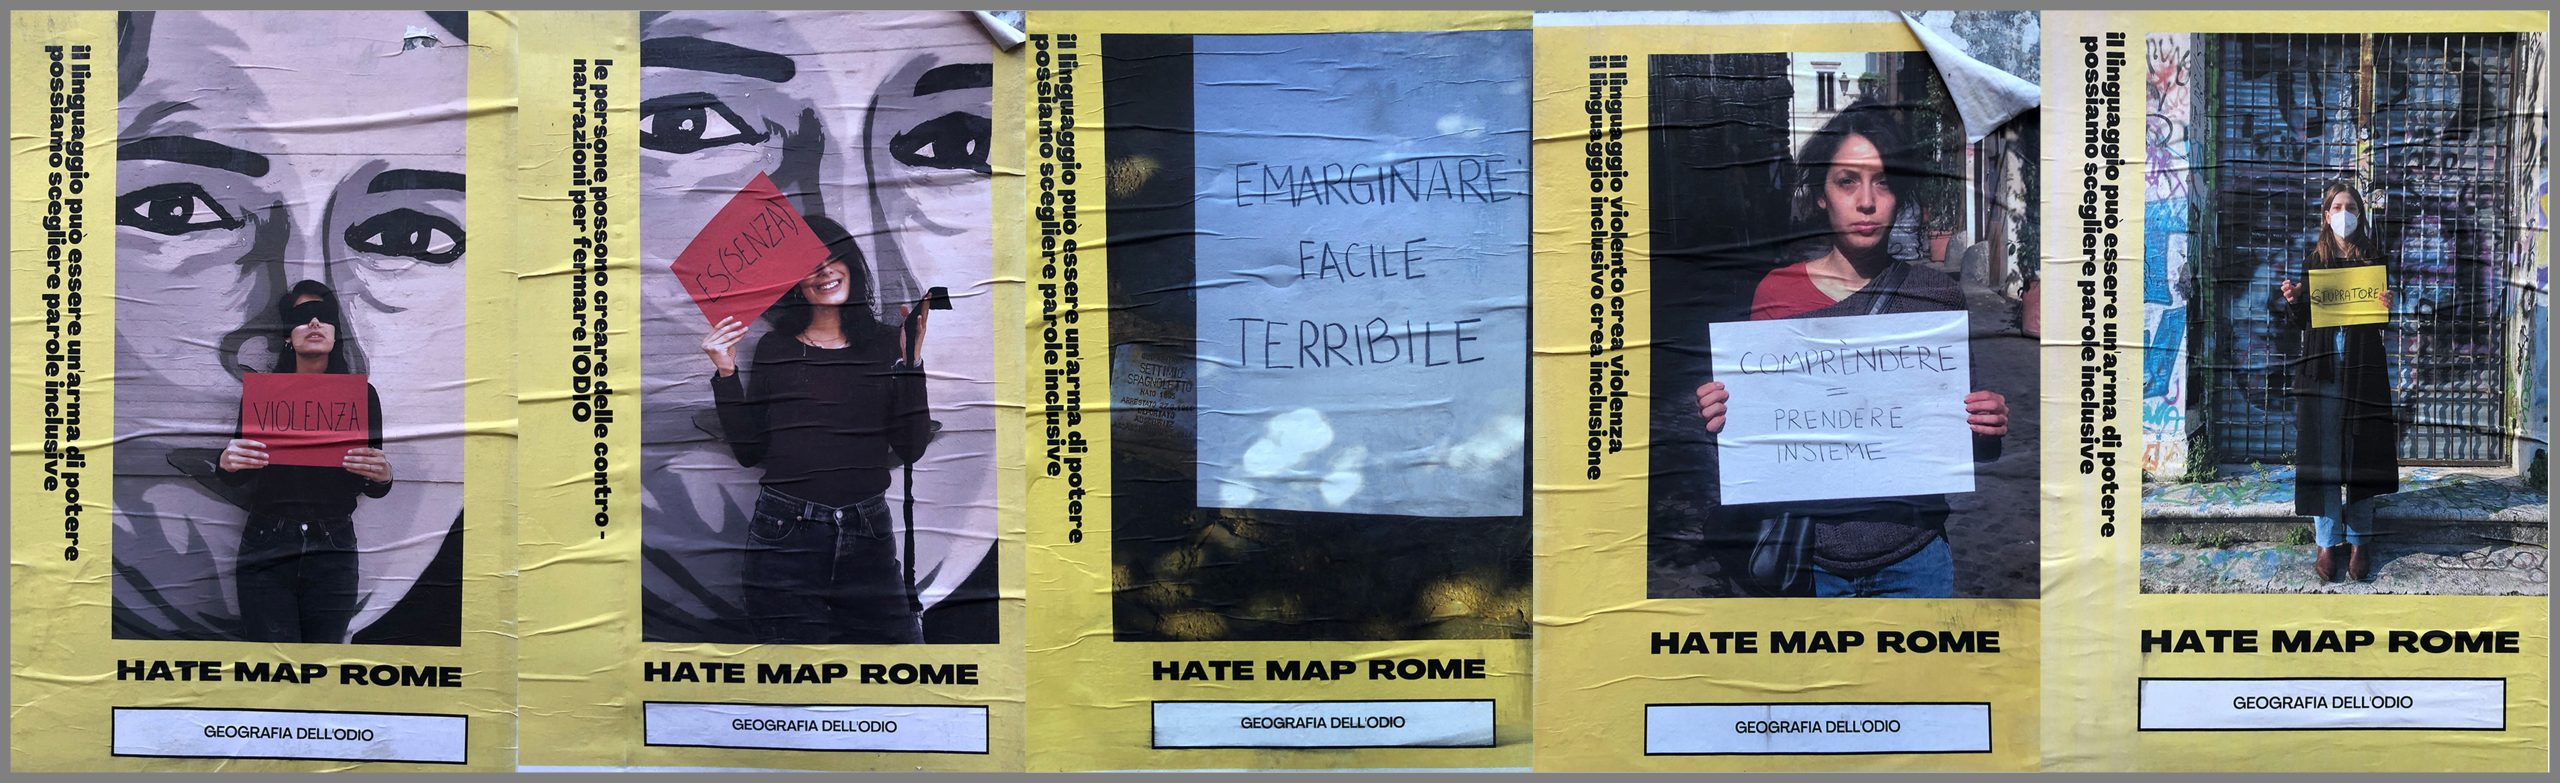 alt tag hate map rome